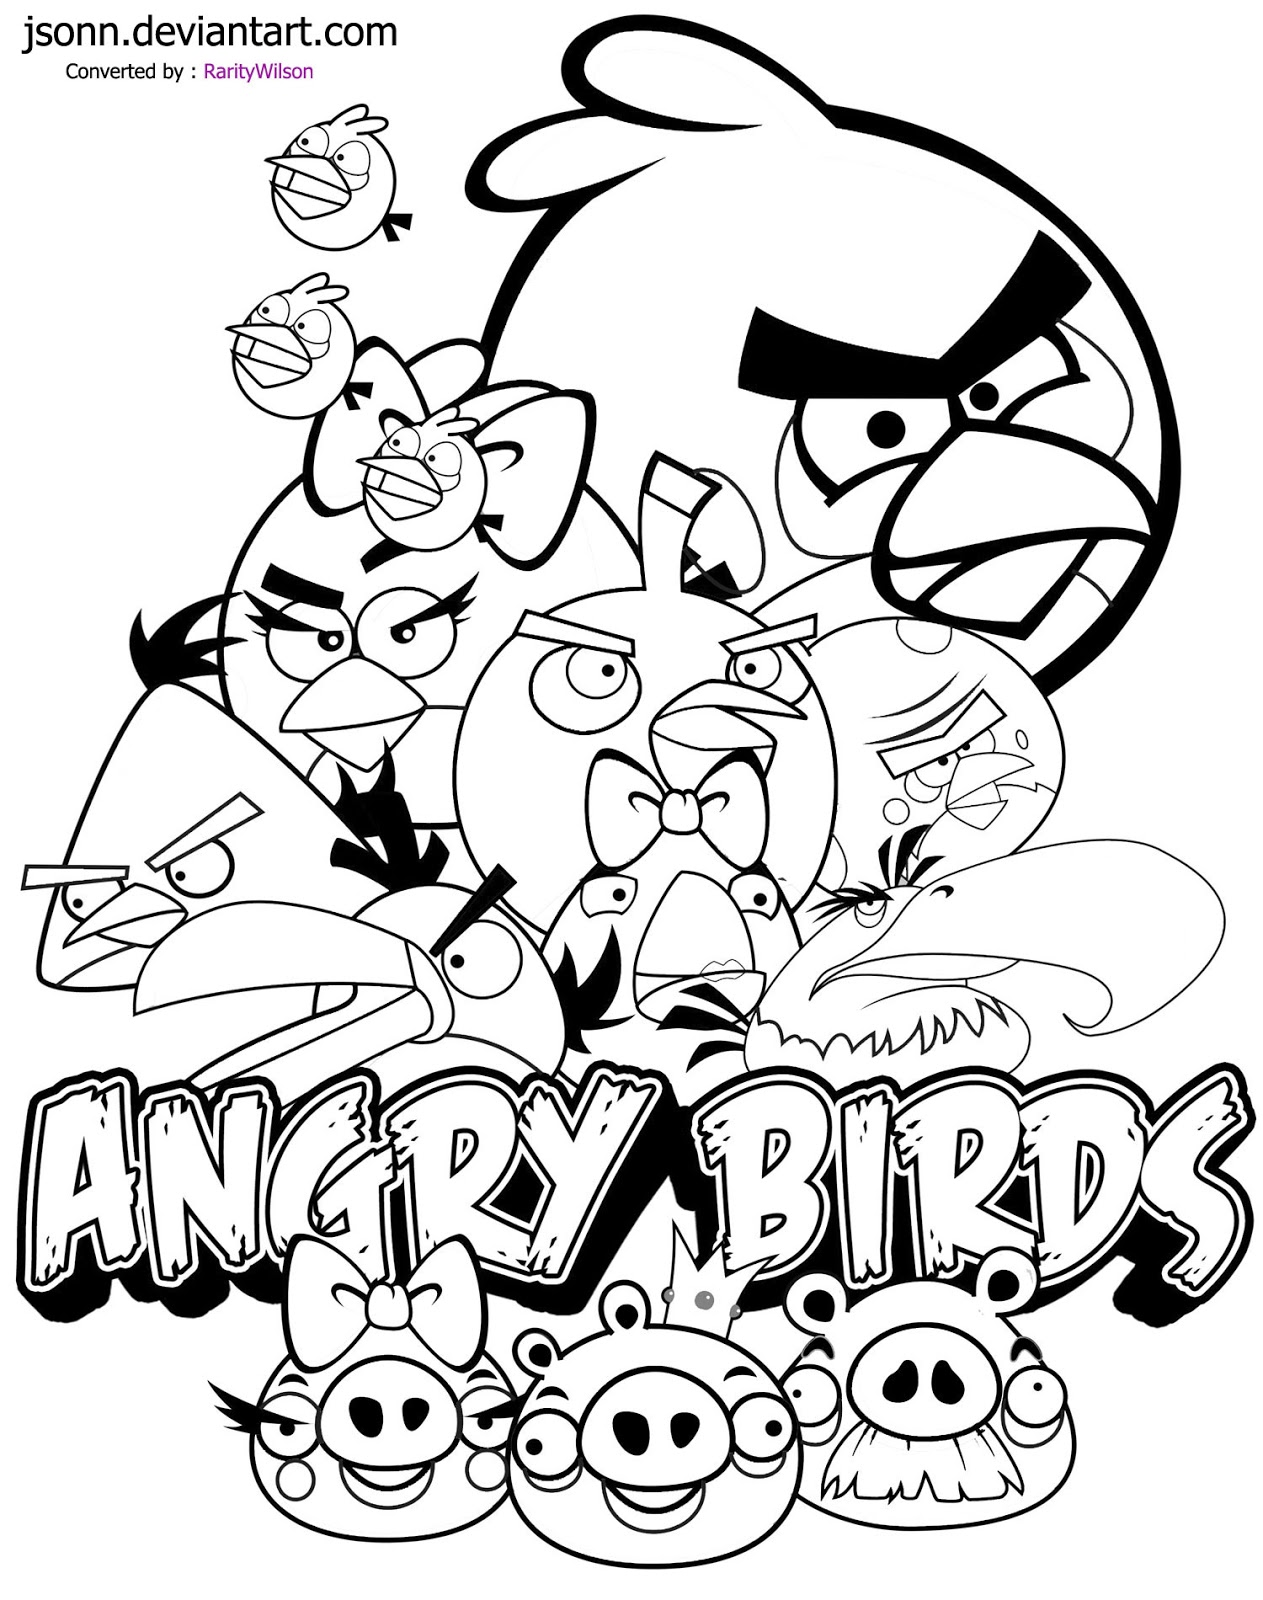 Image Result For Free Angry Birds Games Without Downloading